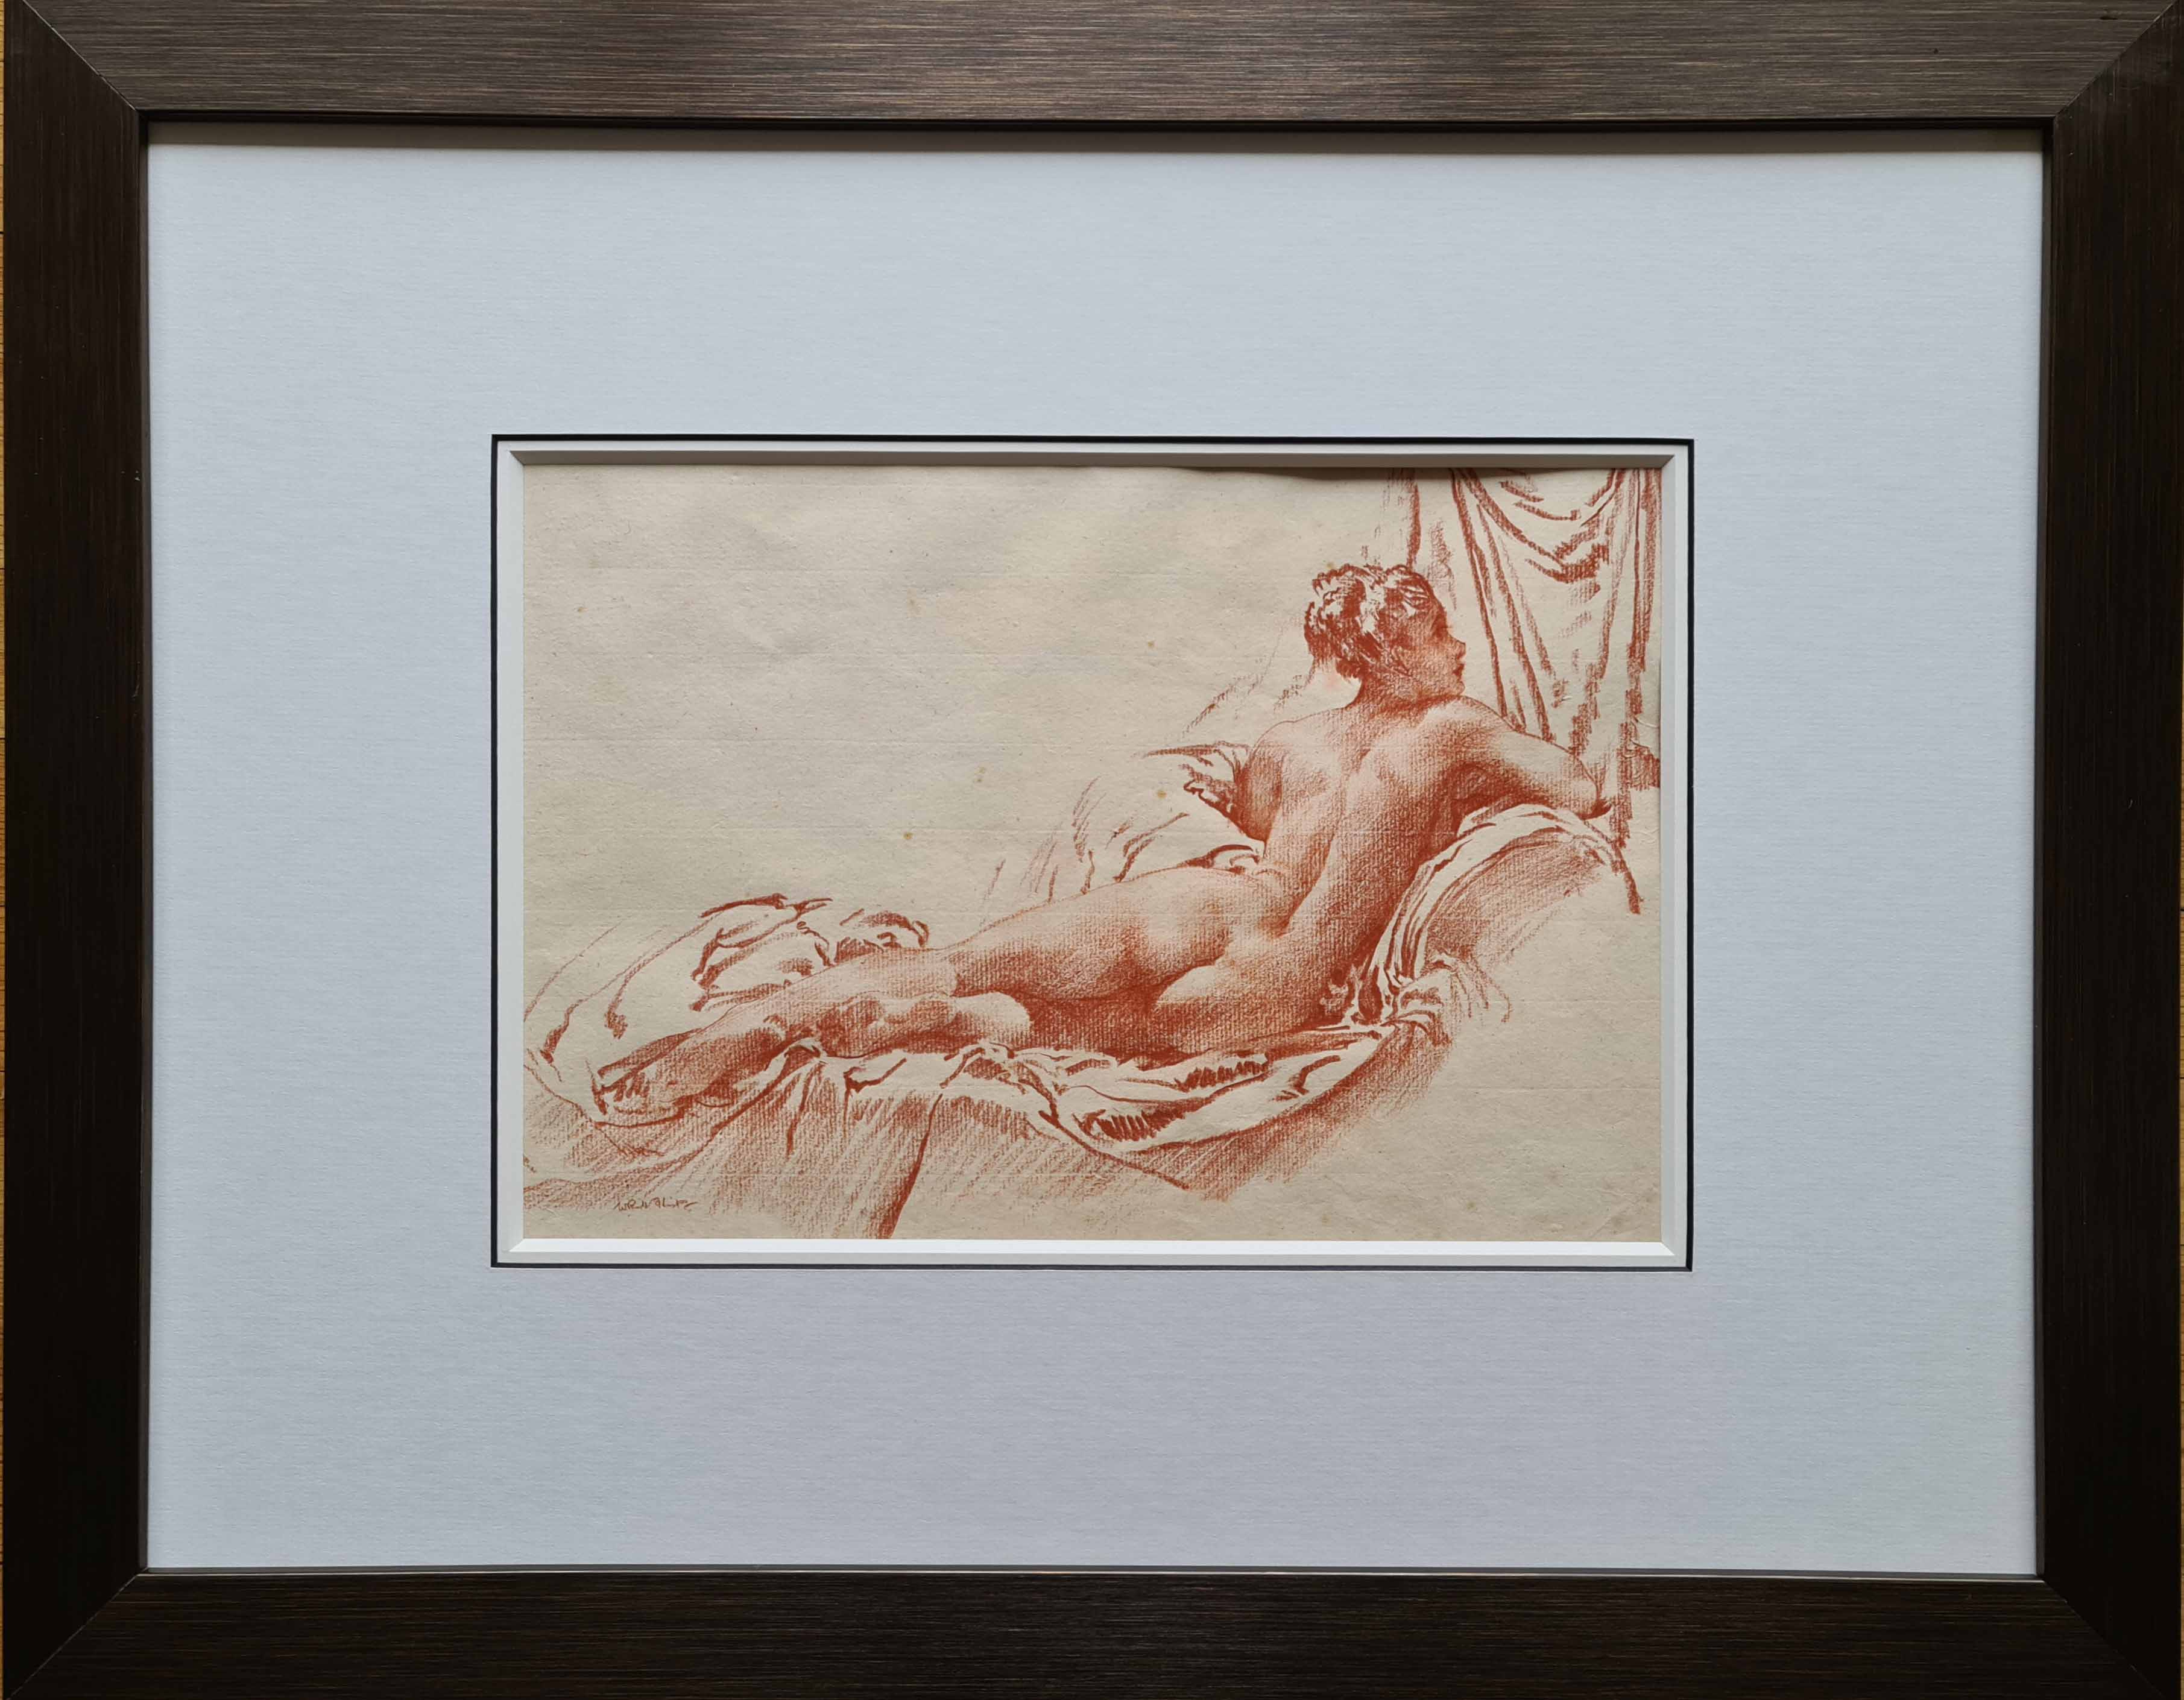 russell flint, original, drawing, red chalk, nude